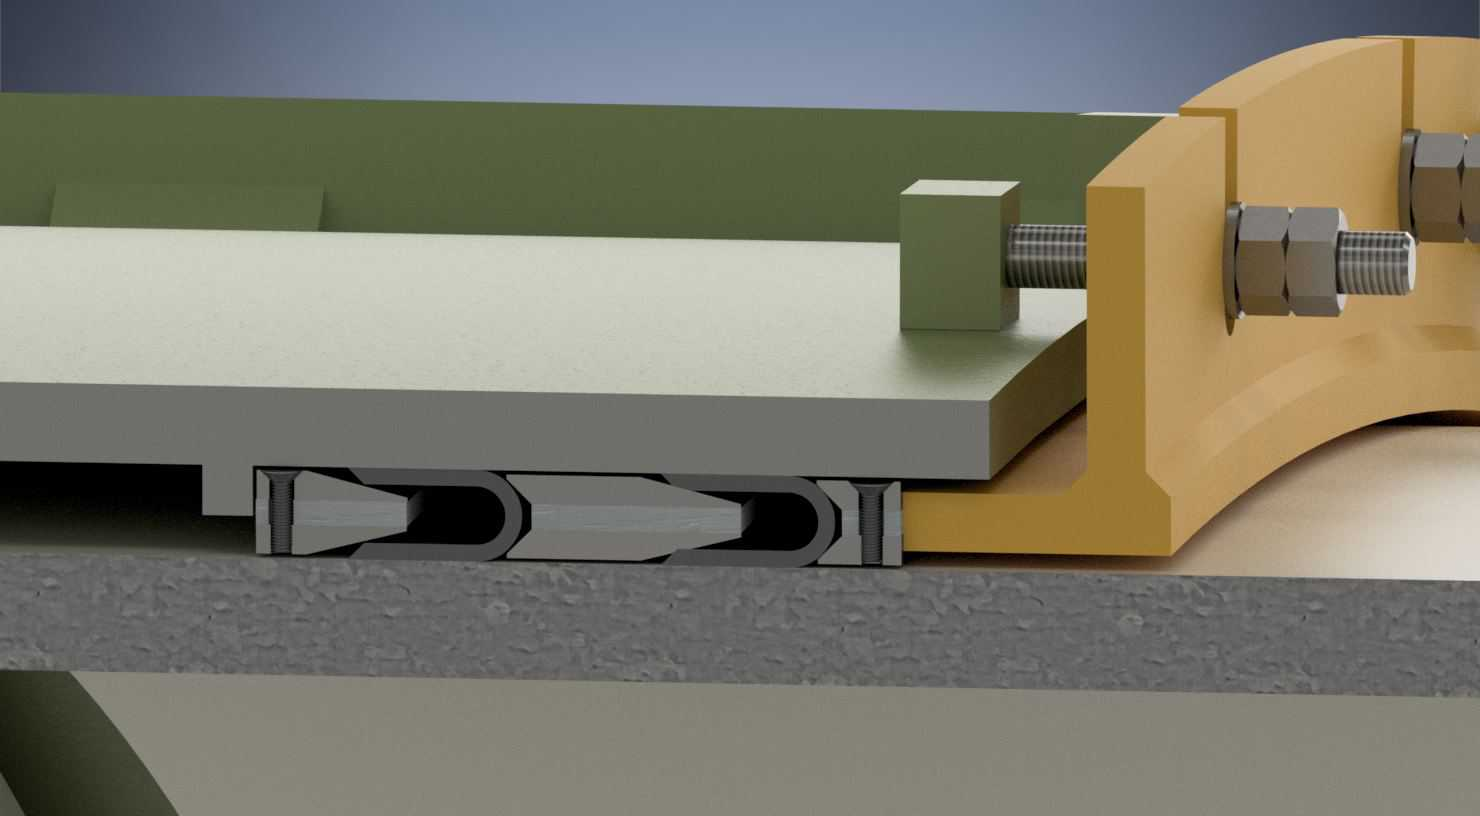 Expansion joints and spiral case seals